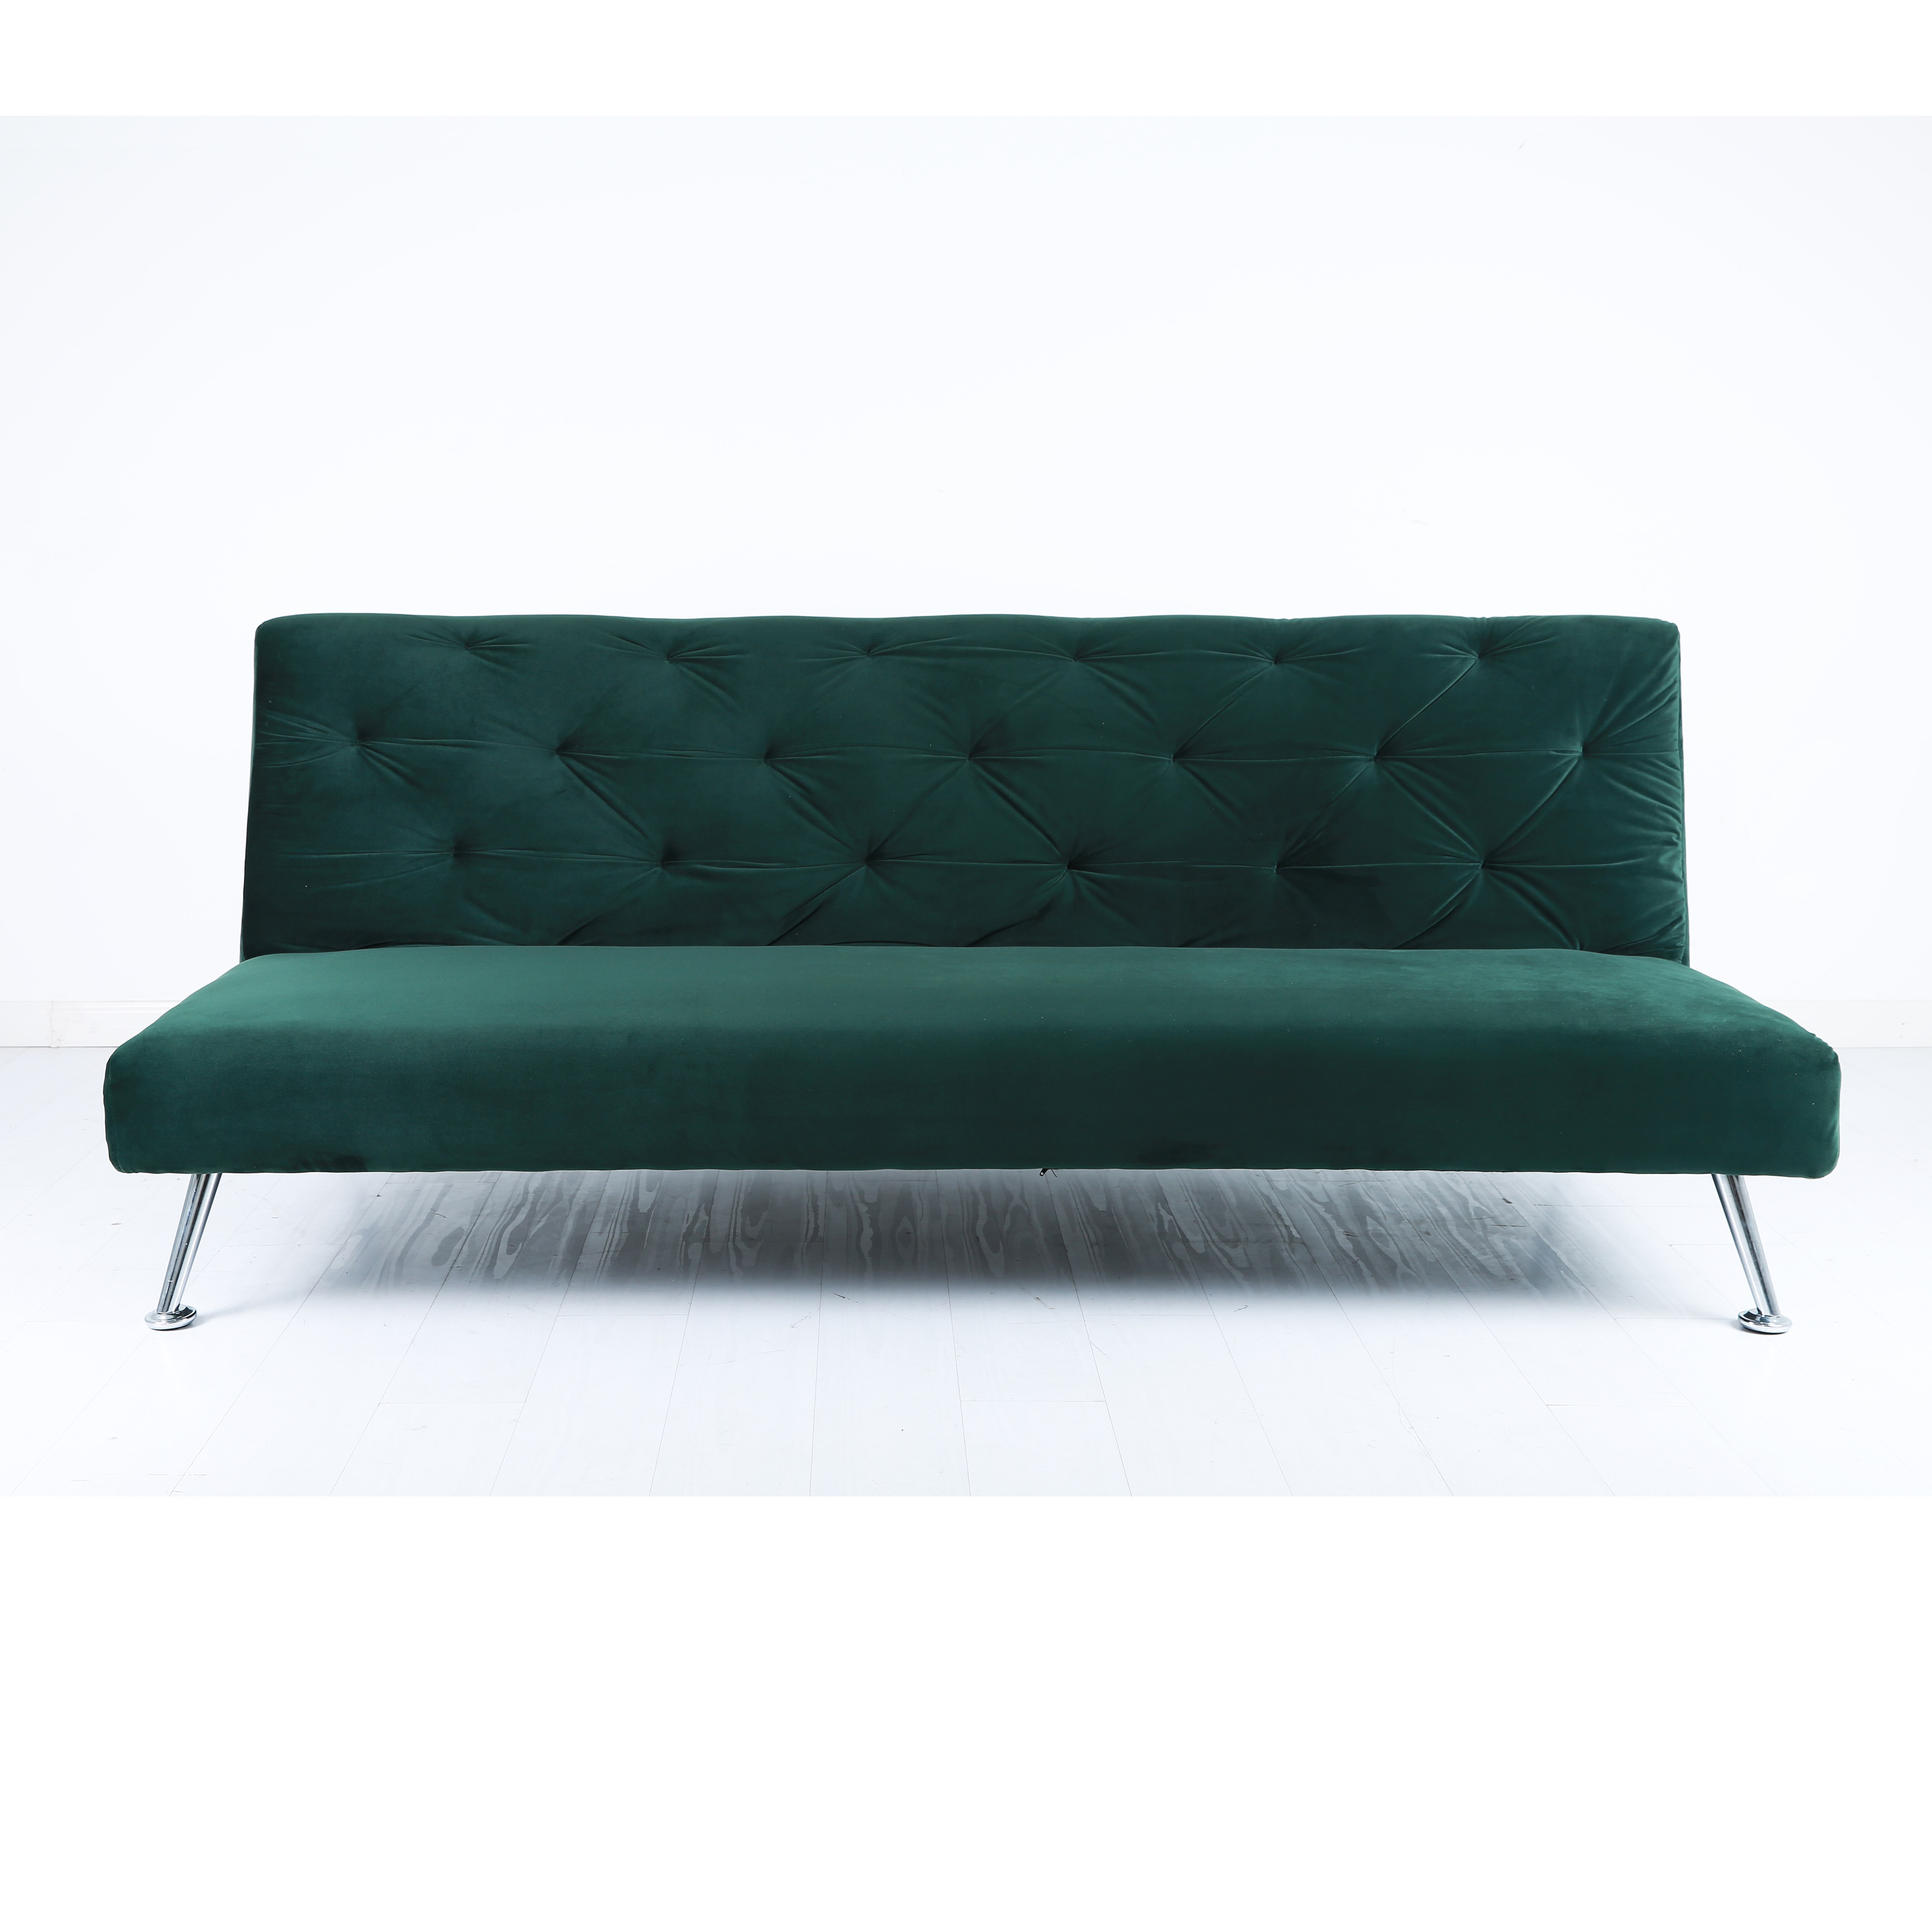 Home Furniture Living Room Sofa Bed